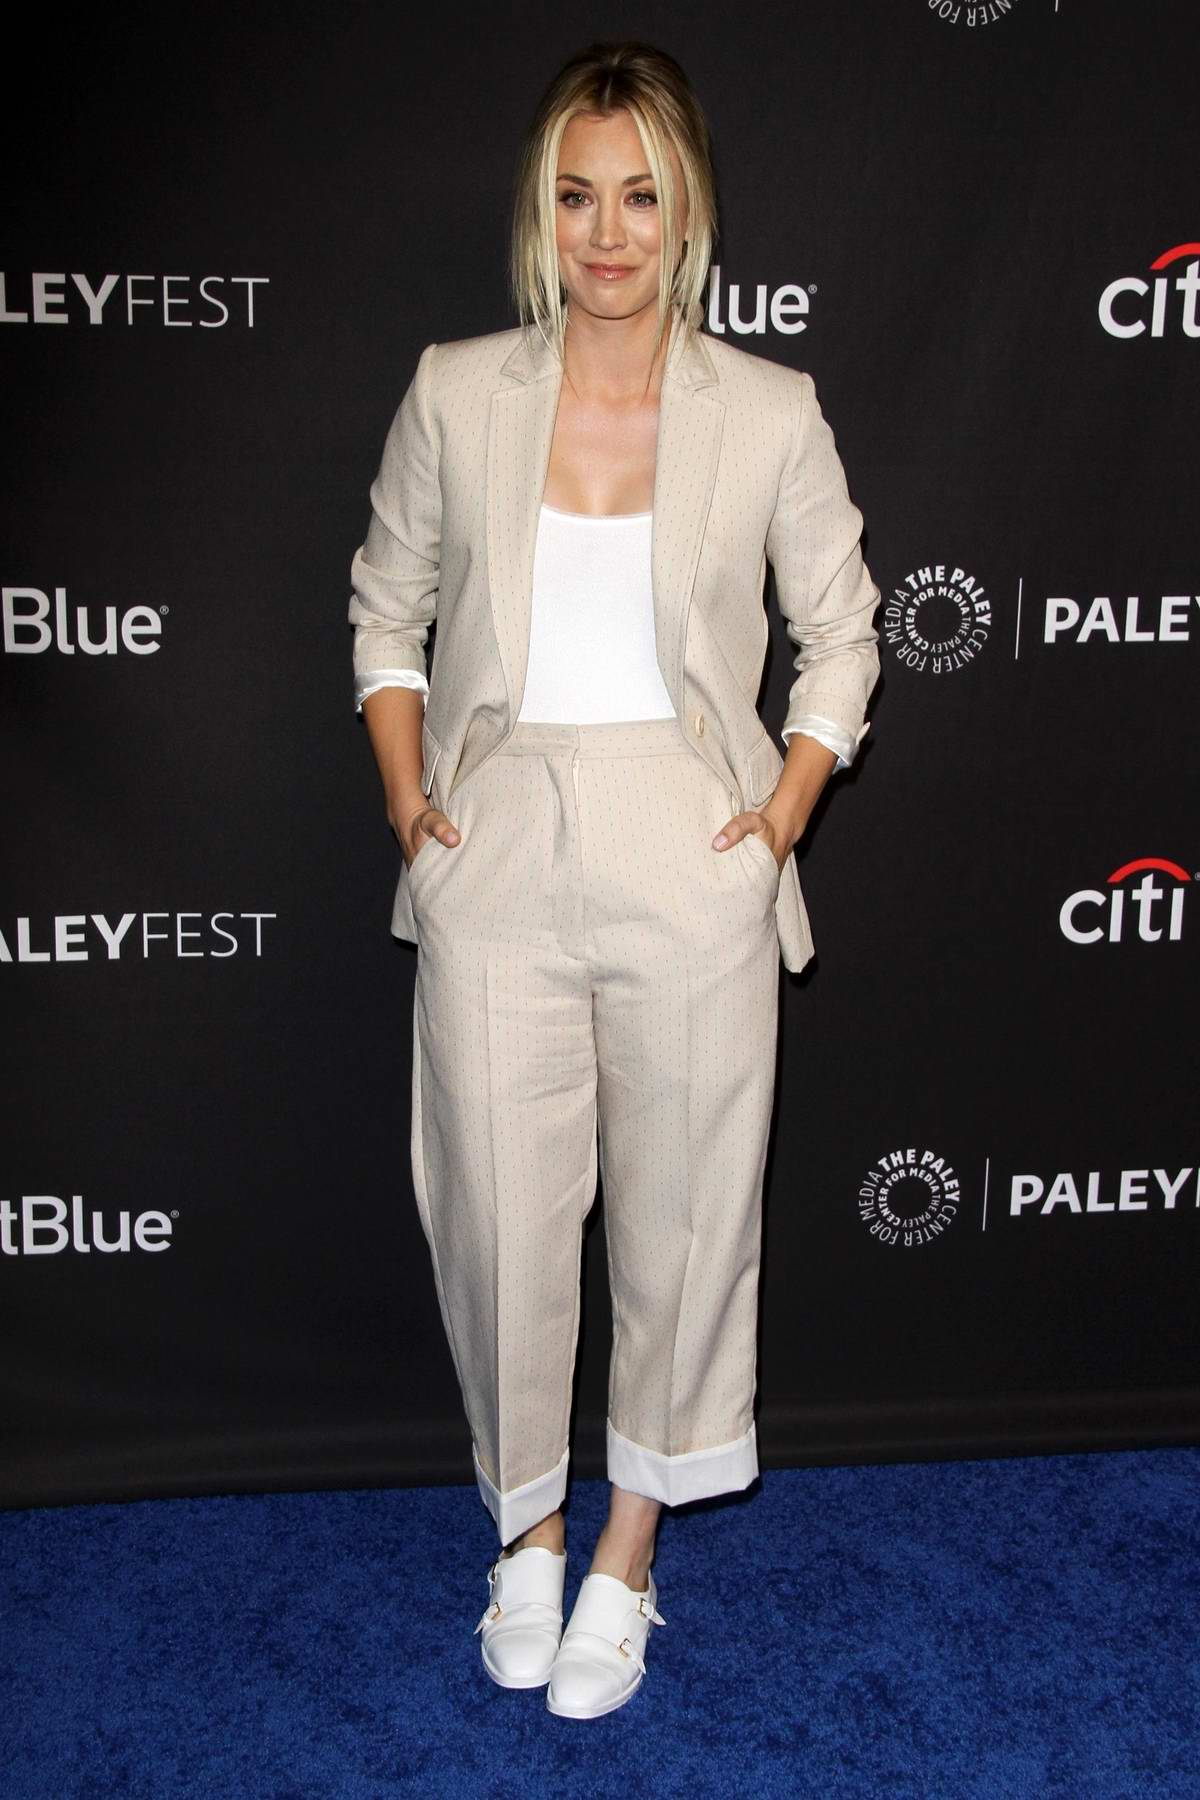 Kaley Cuoco attends 'The Big Bang Theory' and 'Young Sheldon' TV show presentation at Paleyfest in Los Angeles